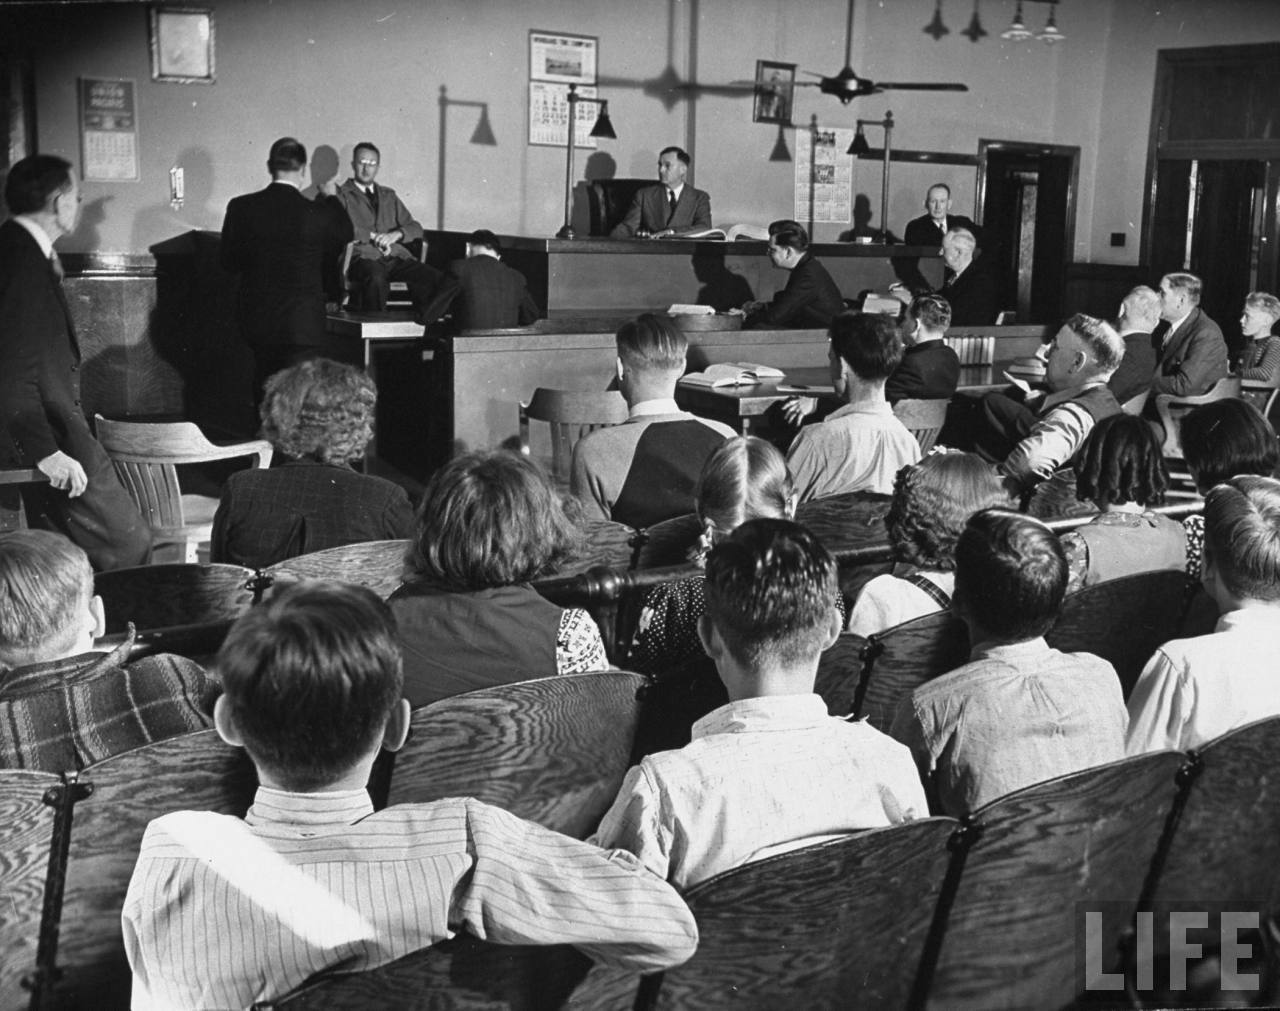 A view of a sixth grade class attending a town meeting during a lesson on government.